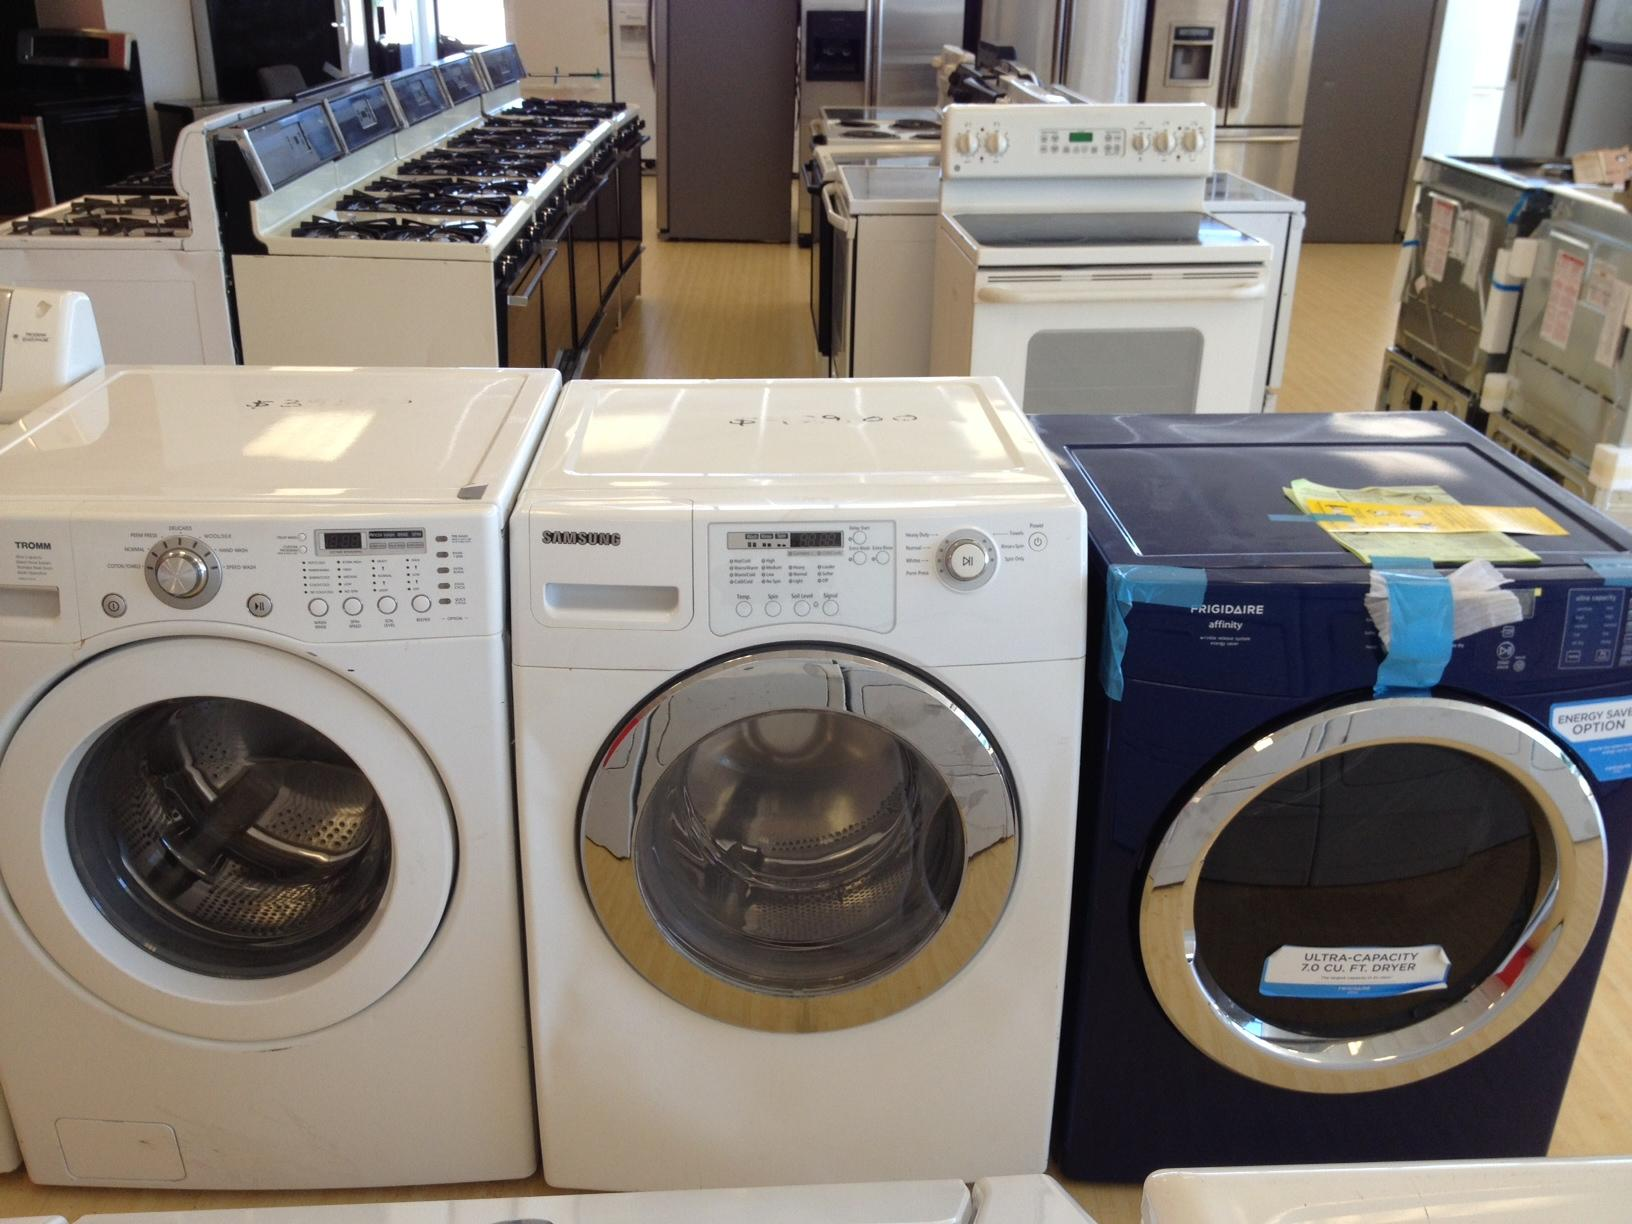 Appliance Amp Mattress Discounters In Willoughby Hills Oh